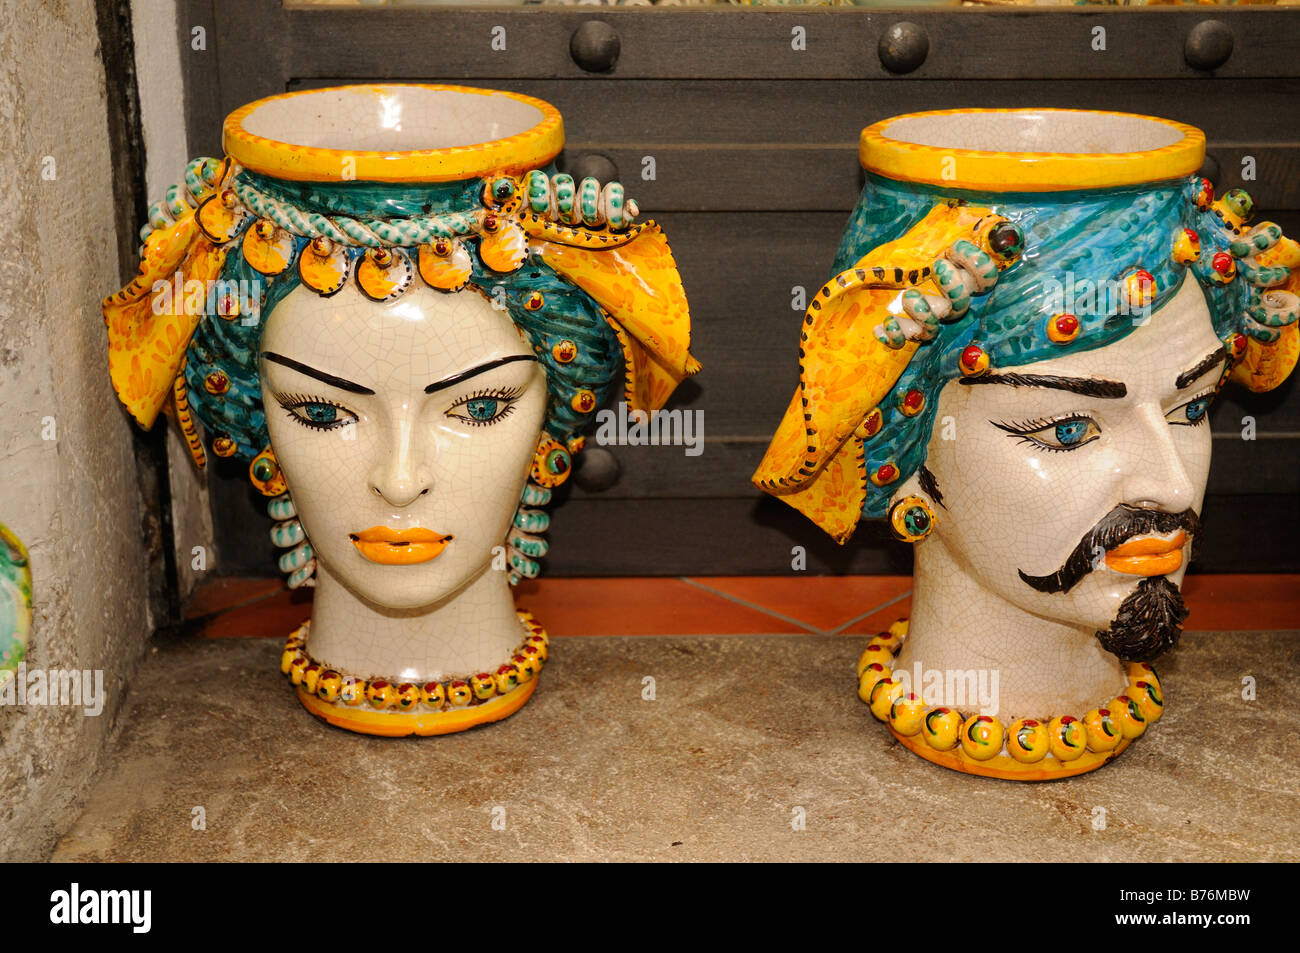 Typical Sicilian Pottery Items On Sale In Shop In Taormina